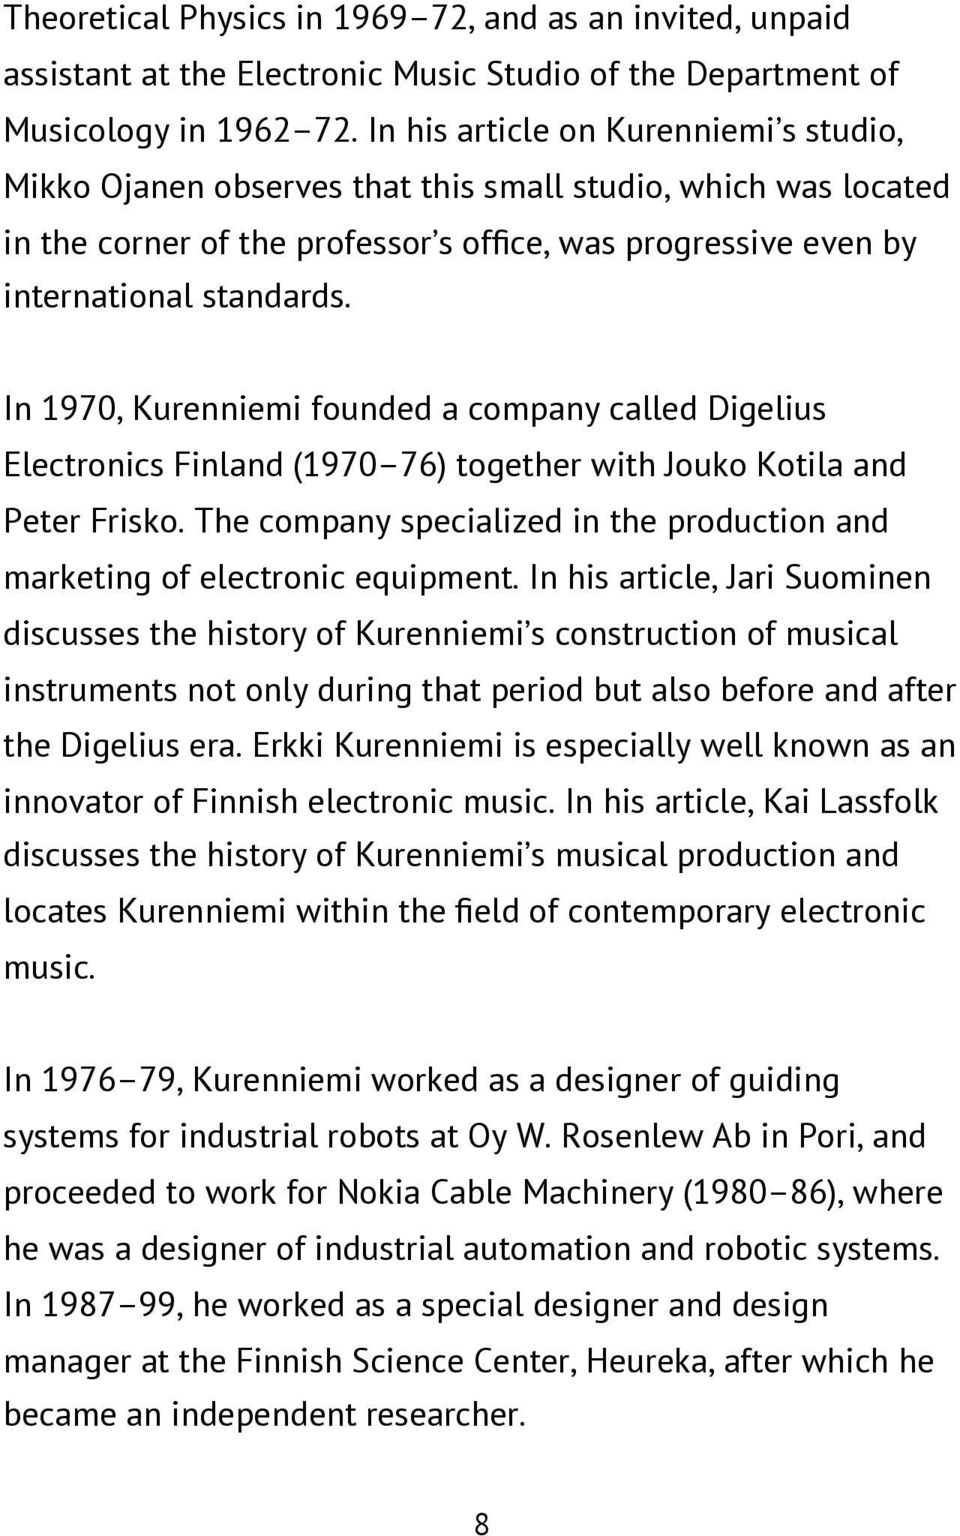 In 1970, Kurenniemi founded a company called Digelius Electronics Finland (1970 76) together with Jouko Kotila and Peter Frisko.